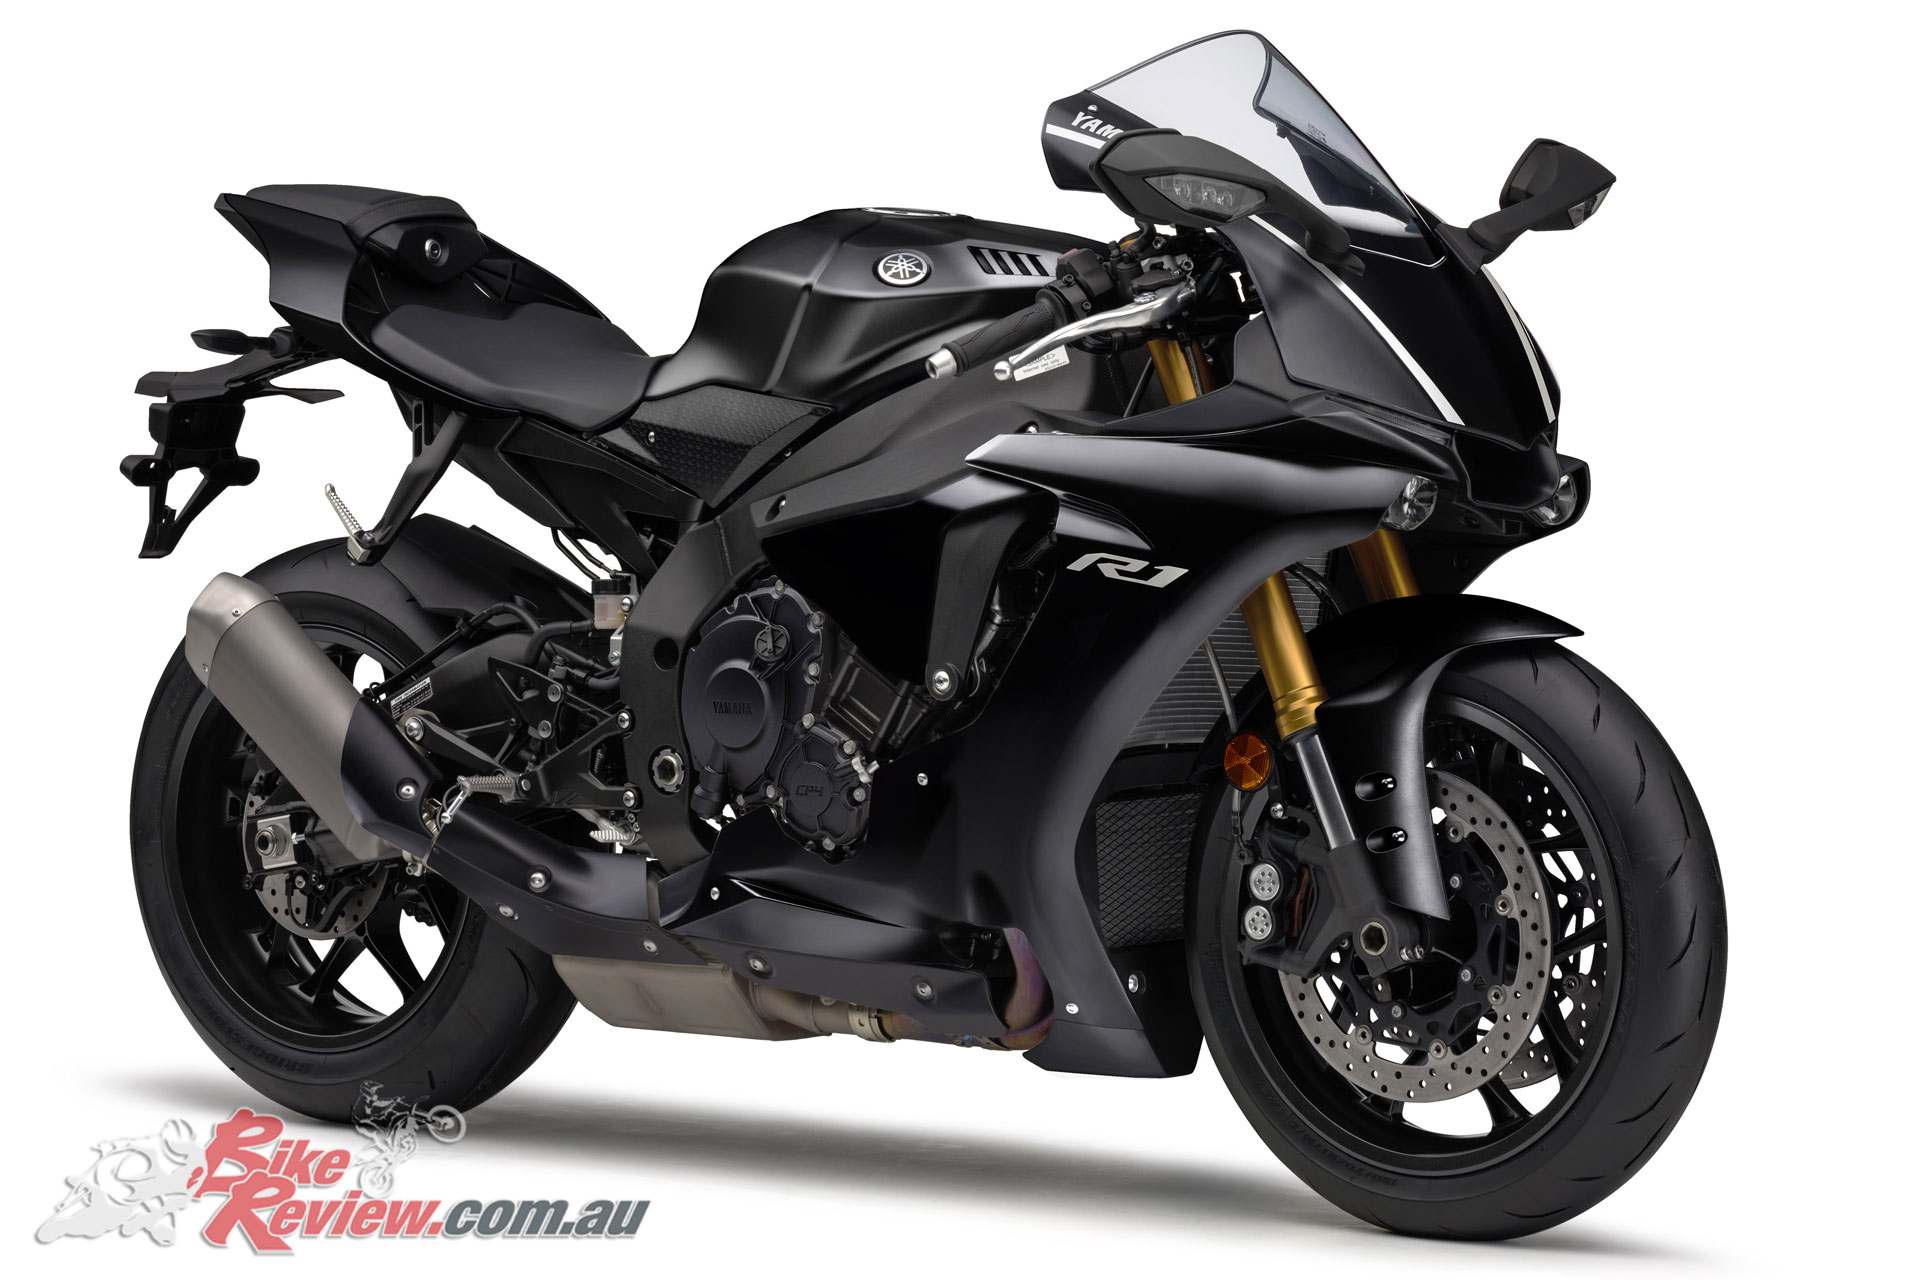 2019 Yamaha YZF-R1 in Tech Black